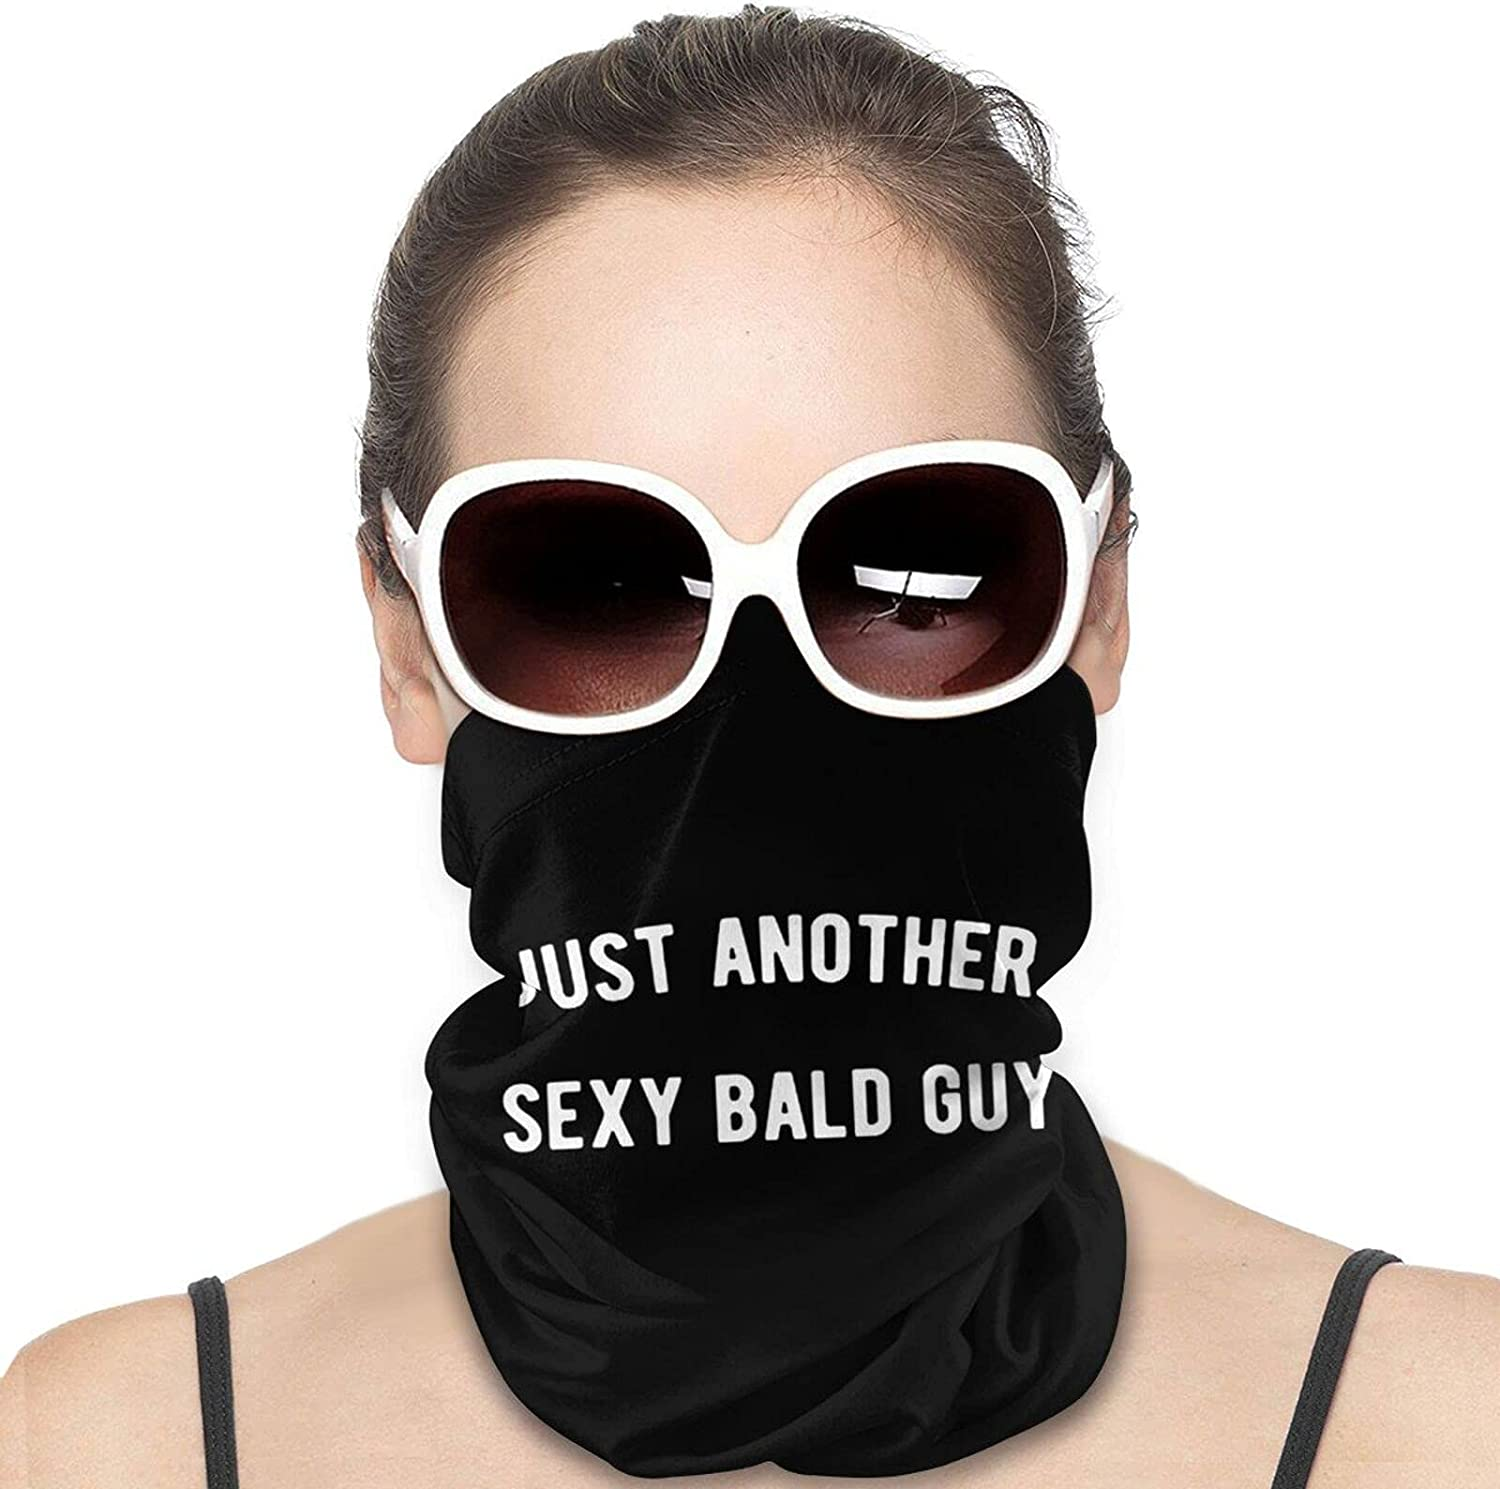 Just Another Sexy Bald Guy Round Neck Gaiter Bandnas Face Cover Uv Protection Prevent bask in Ice Scarf Headbands Perfect for Motorcycle Cycling Running Festival Raves Outdoors